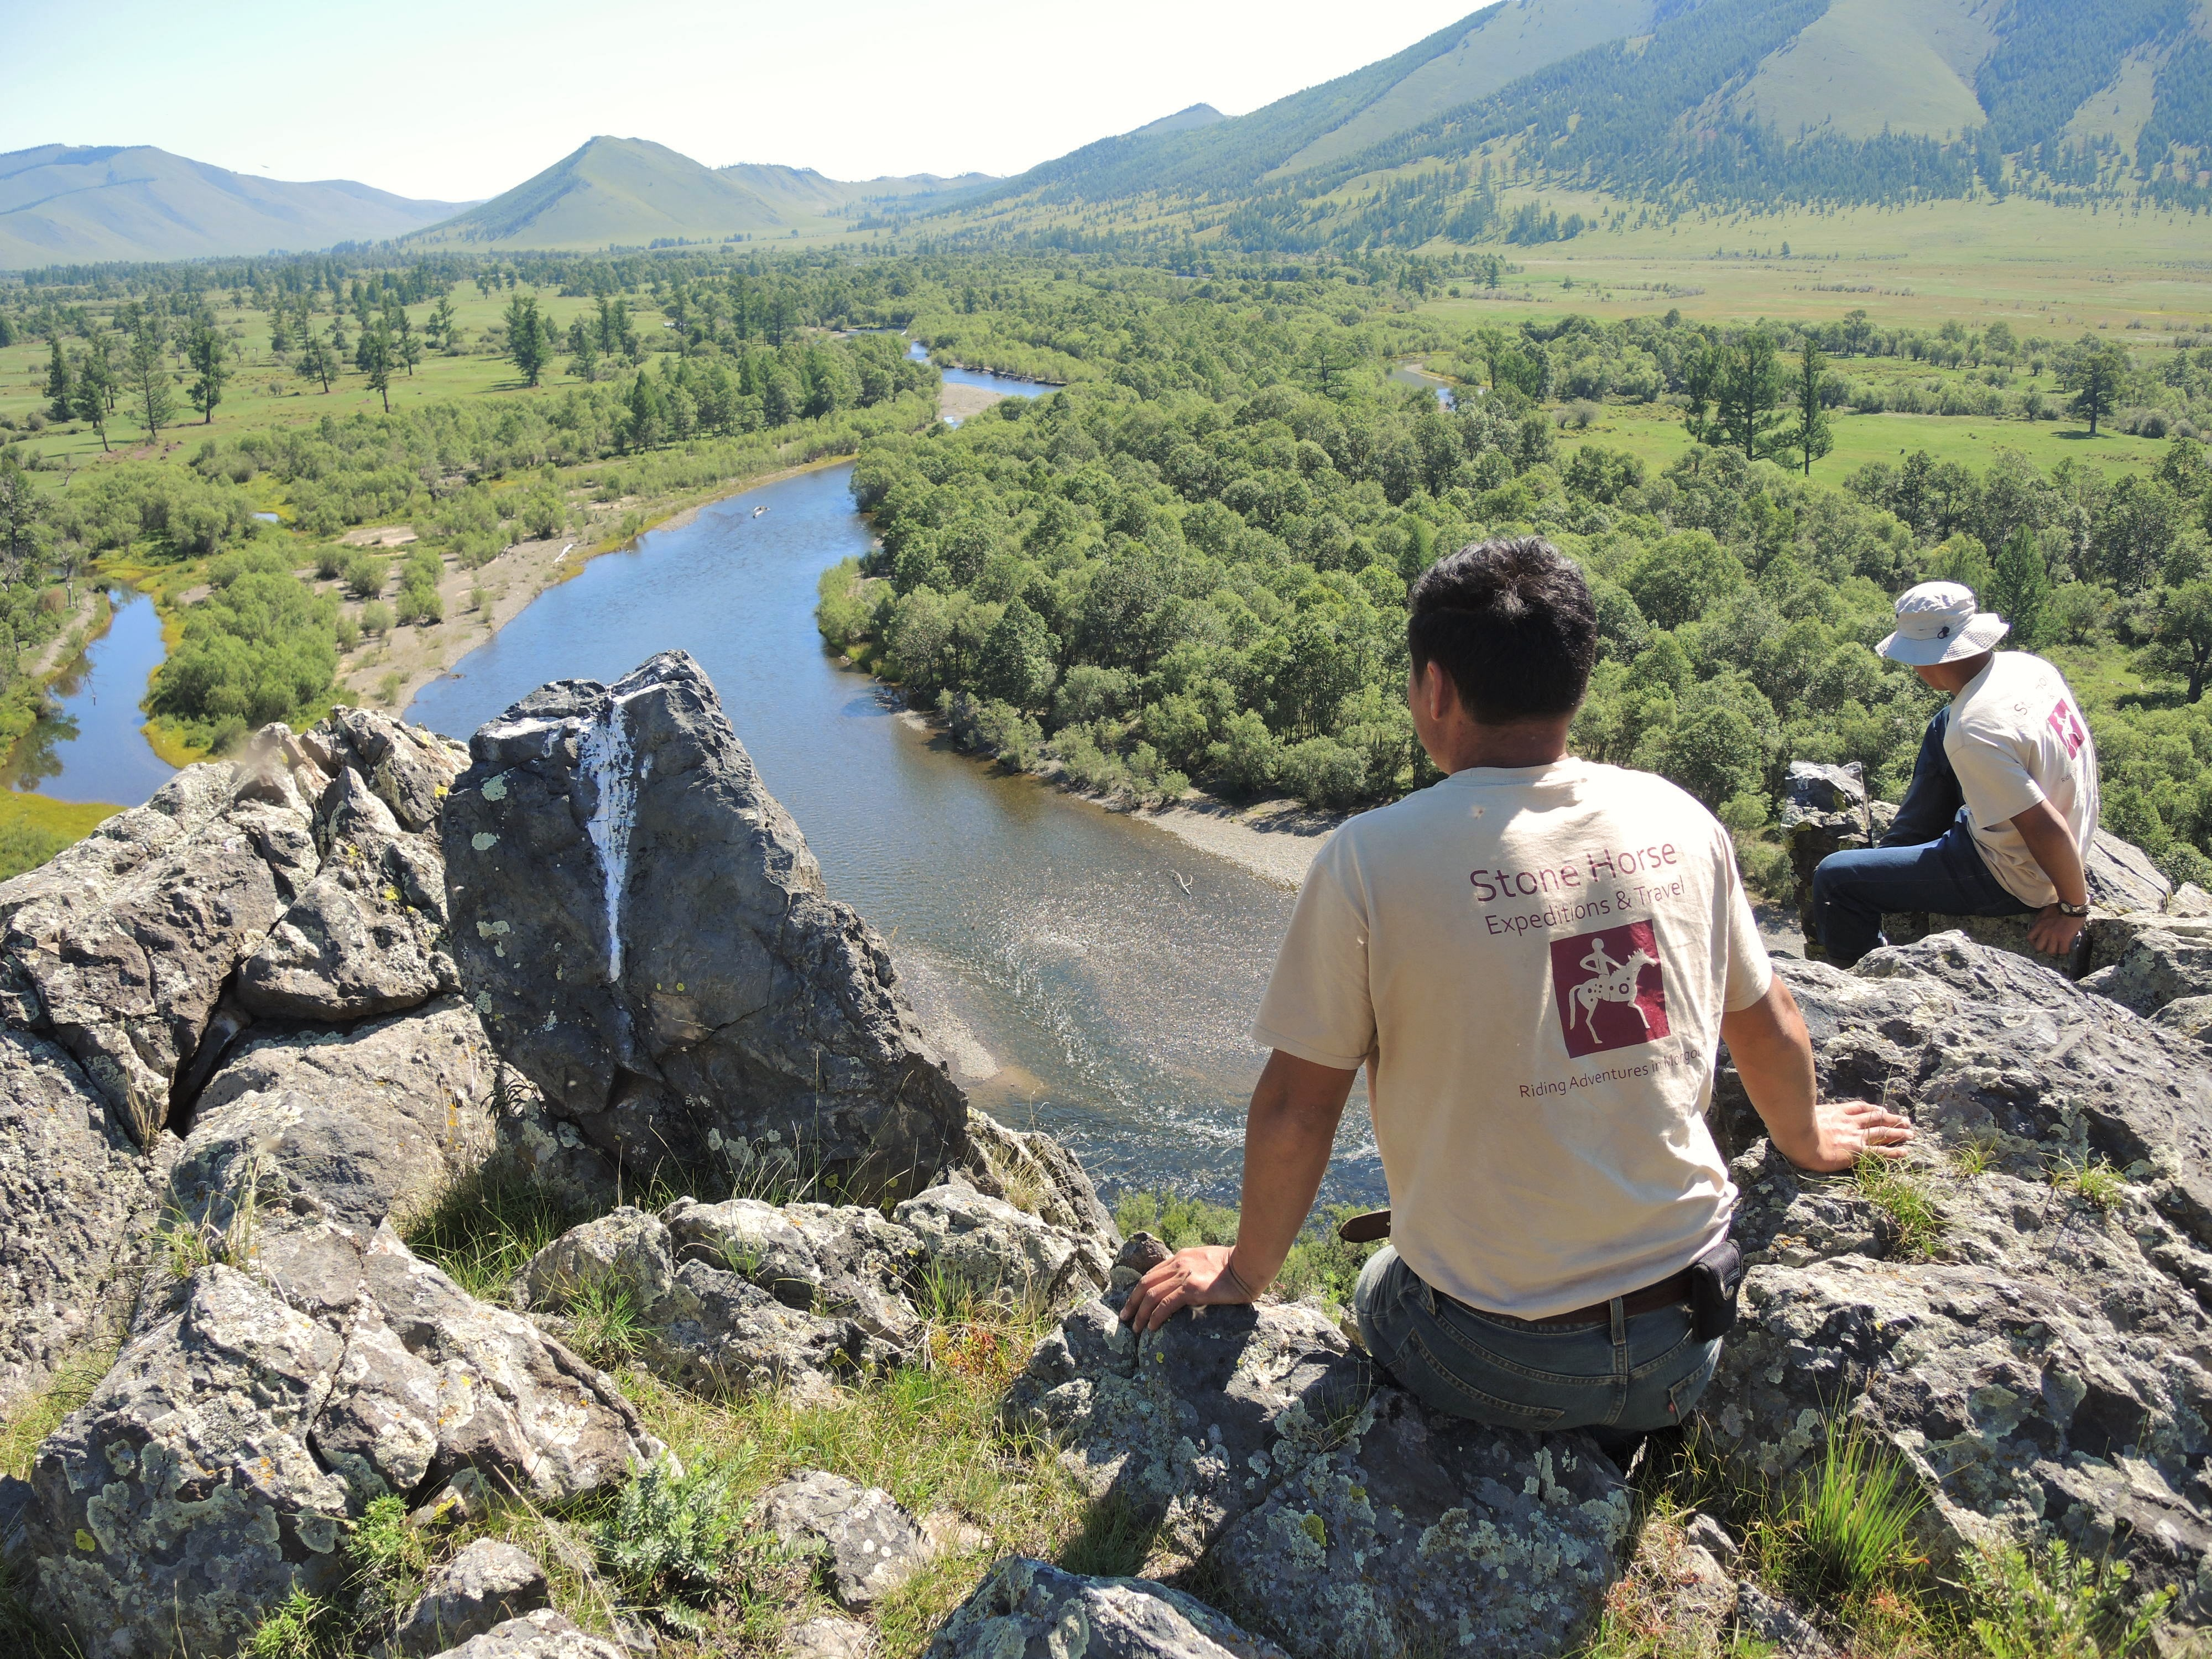 8 good reasons to choose Stone Horse Expeditions for trail riding in Mongolia